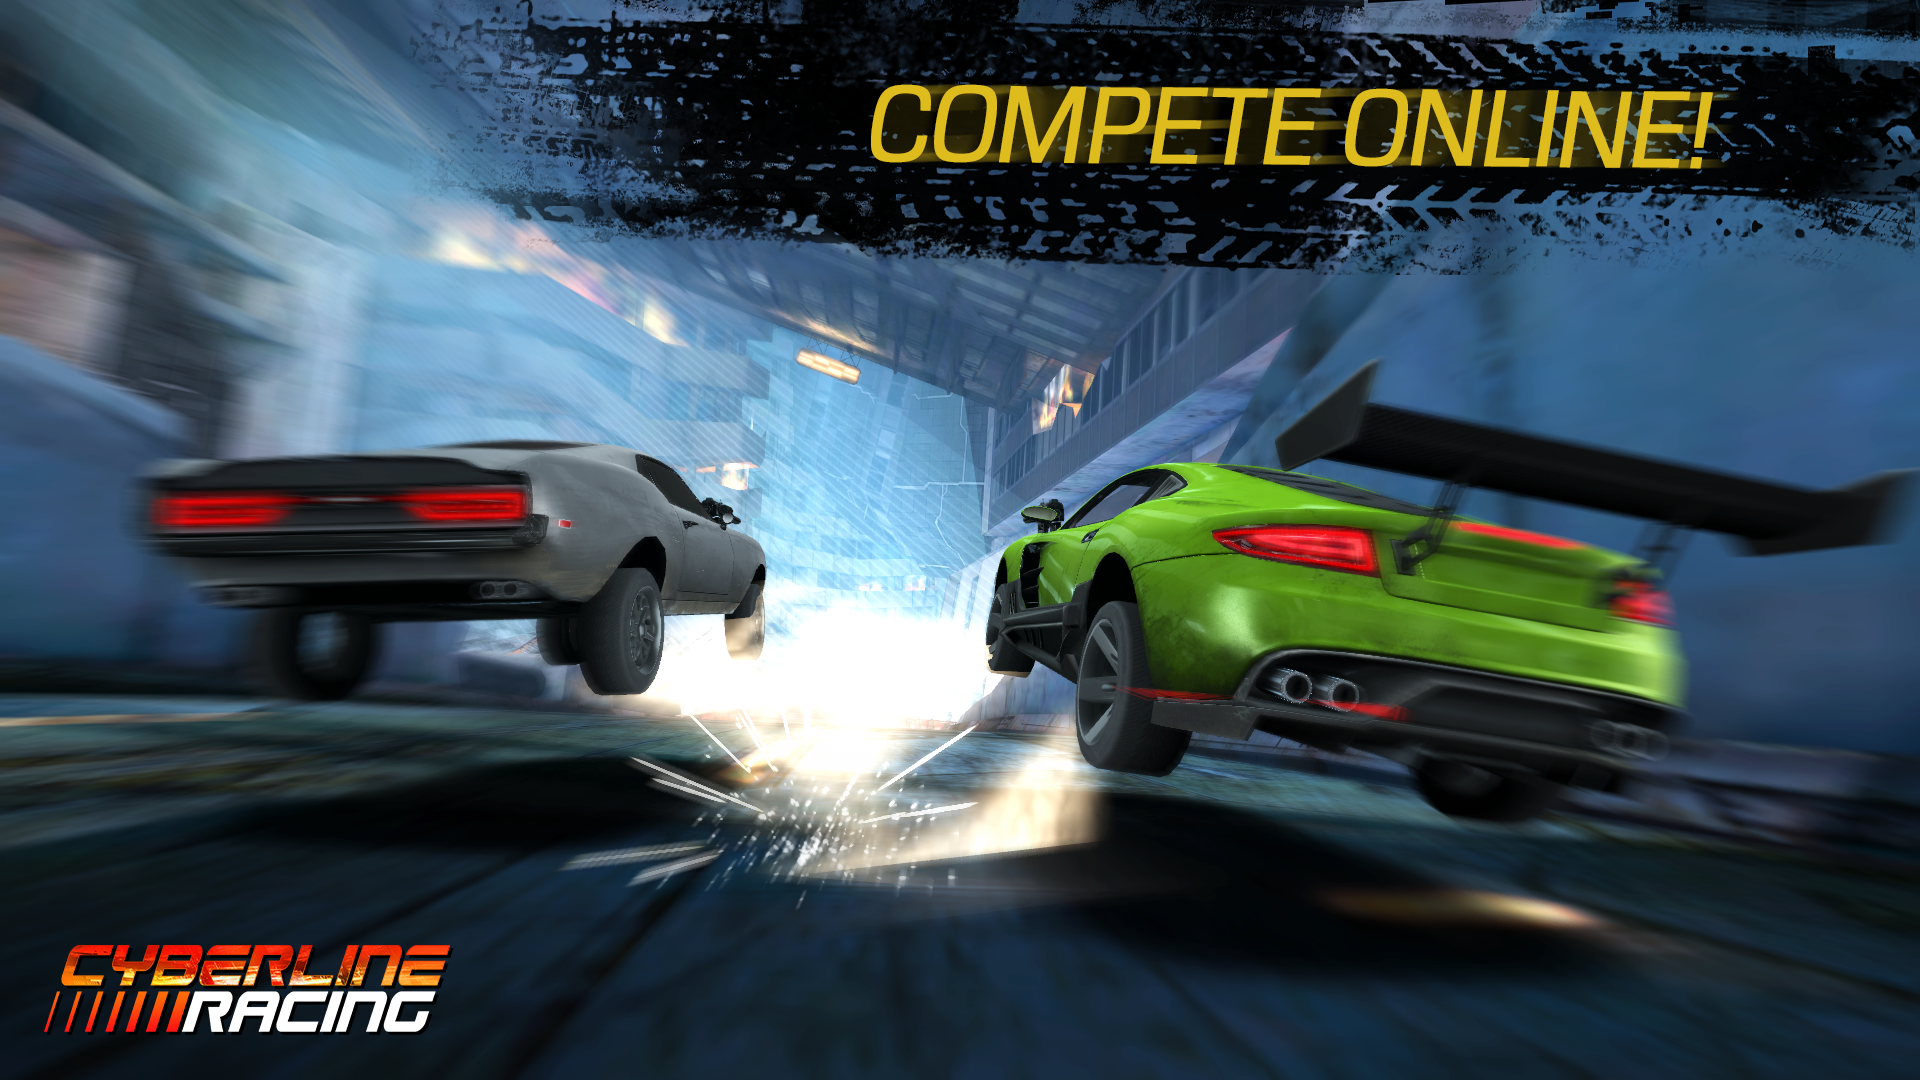 Cyberline Racing Android, AndroidTab game